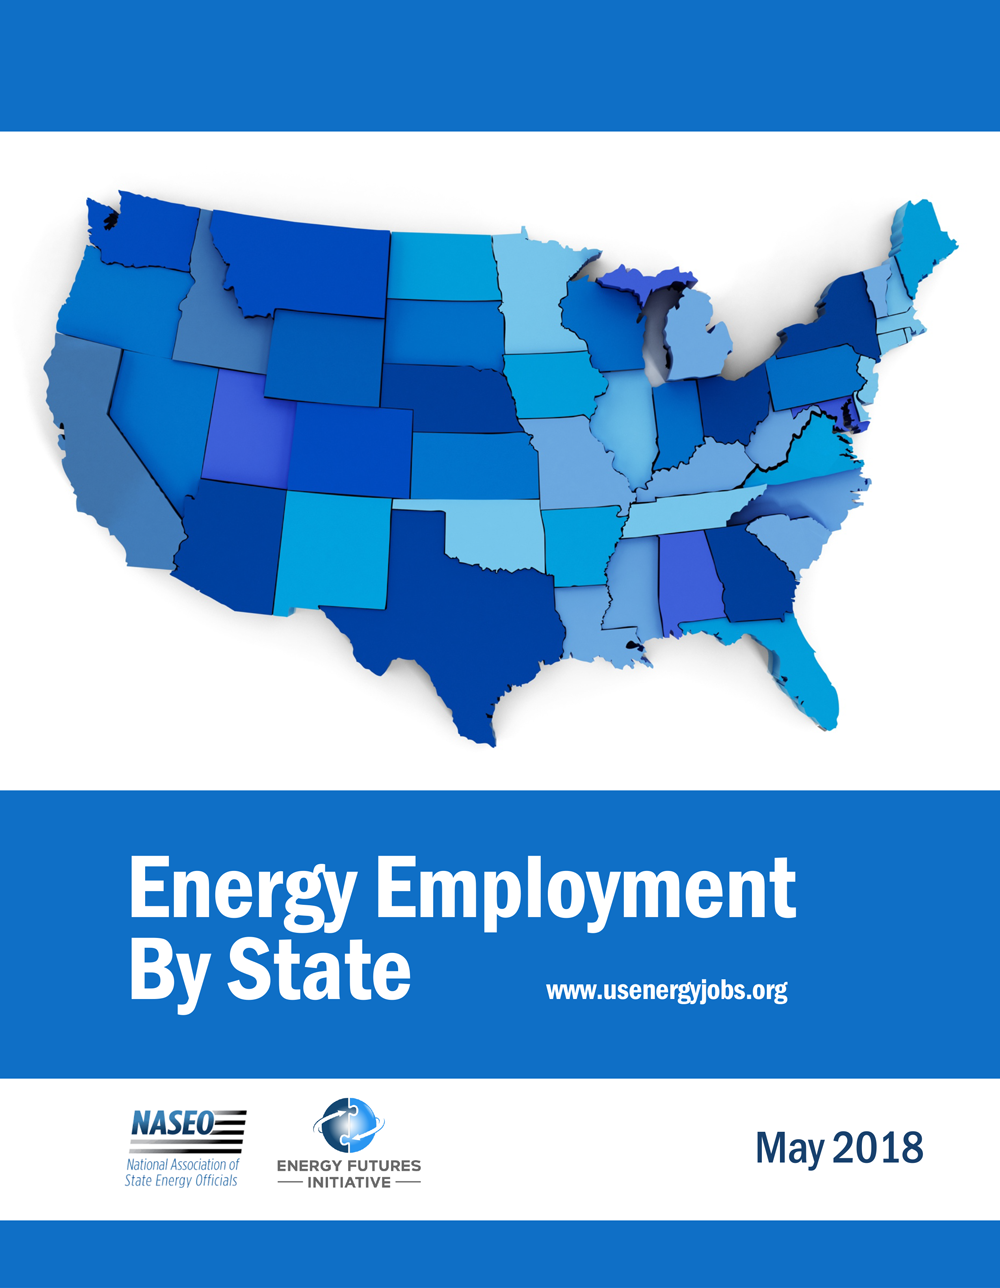 State Charts - Download a PDF of charts by state and sector from the 2018 U.S. Energy and Employment Report.Download the charts